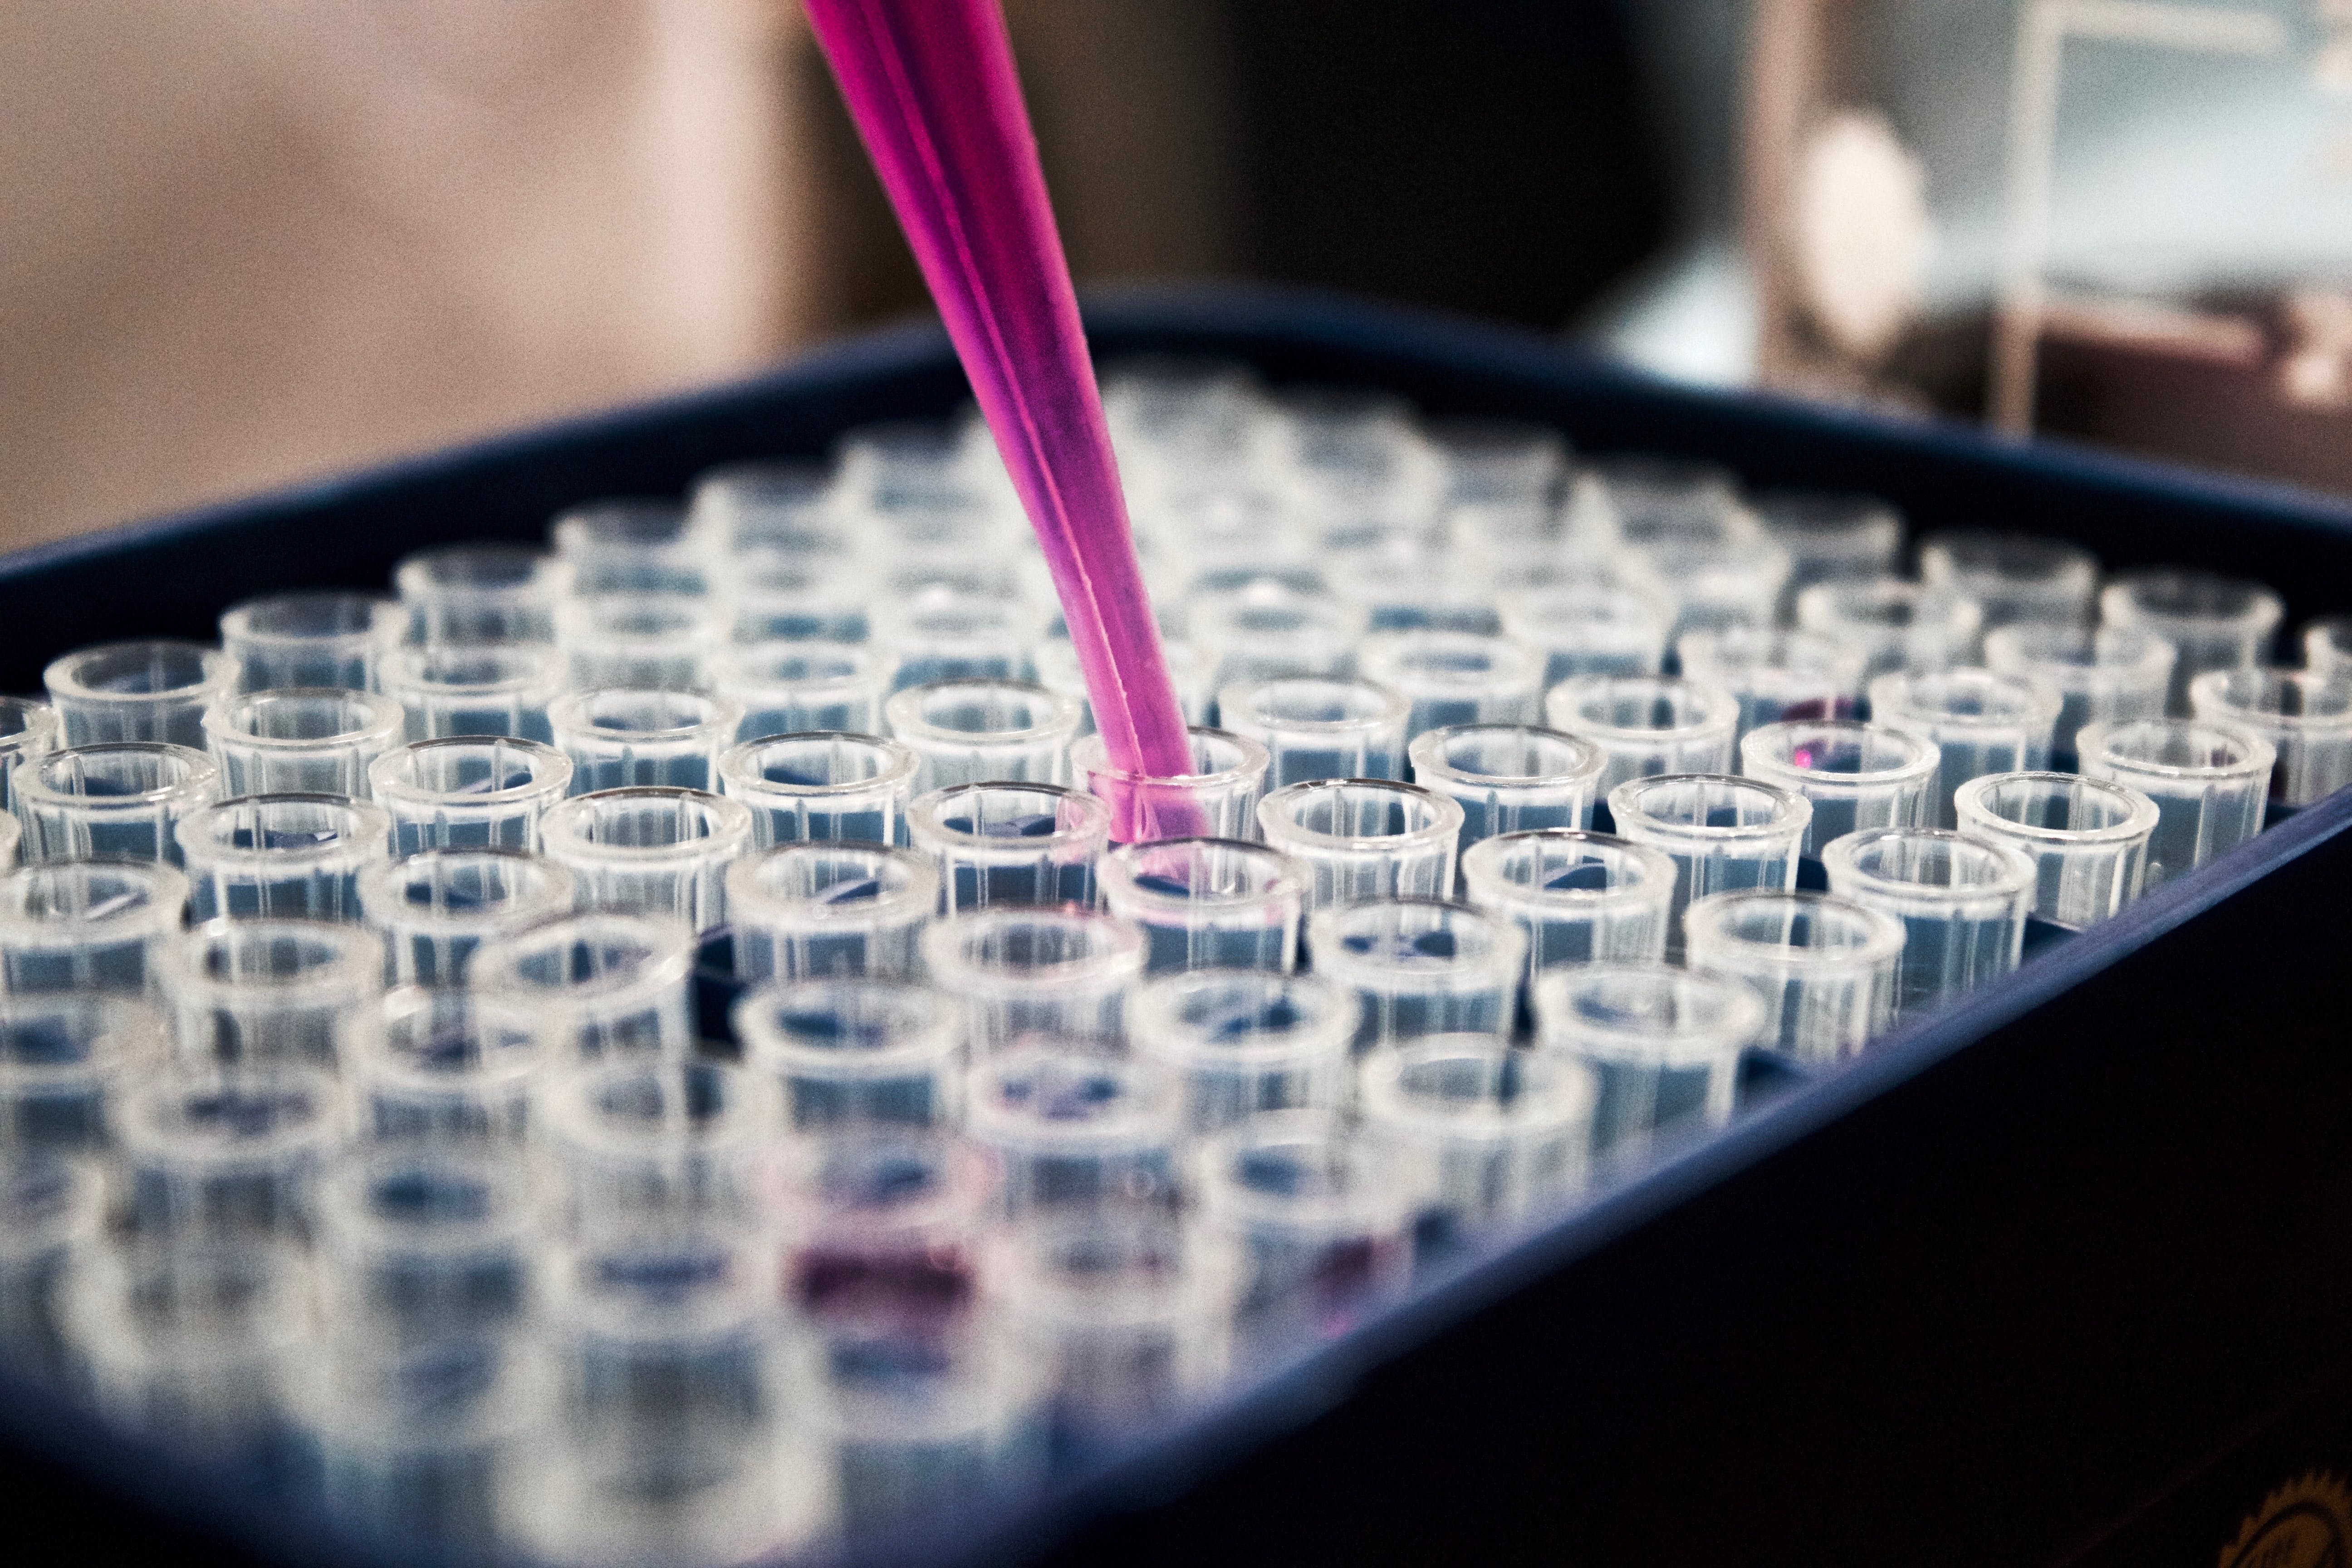 pipette with pink liquid